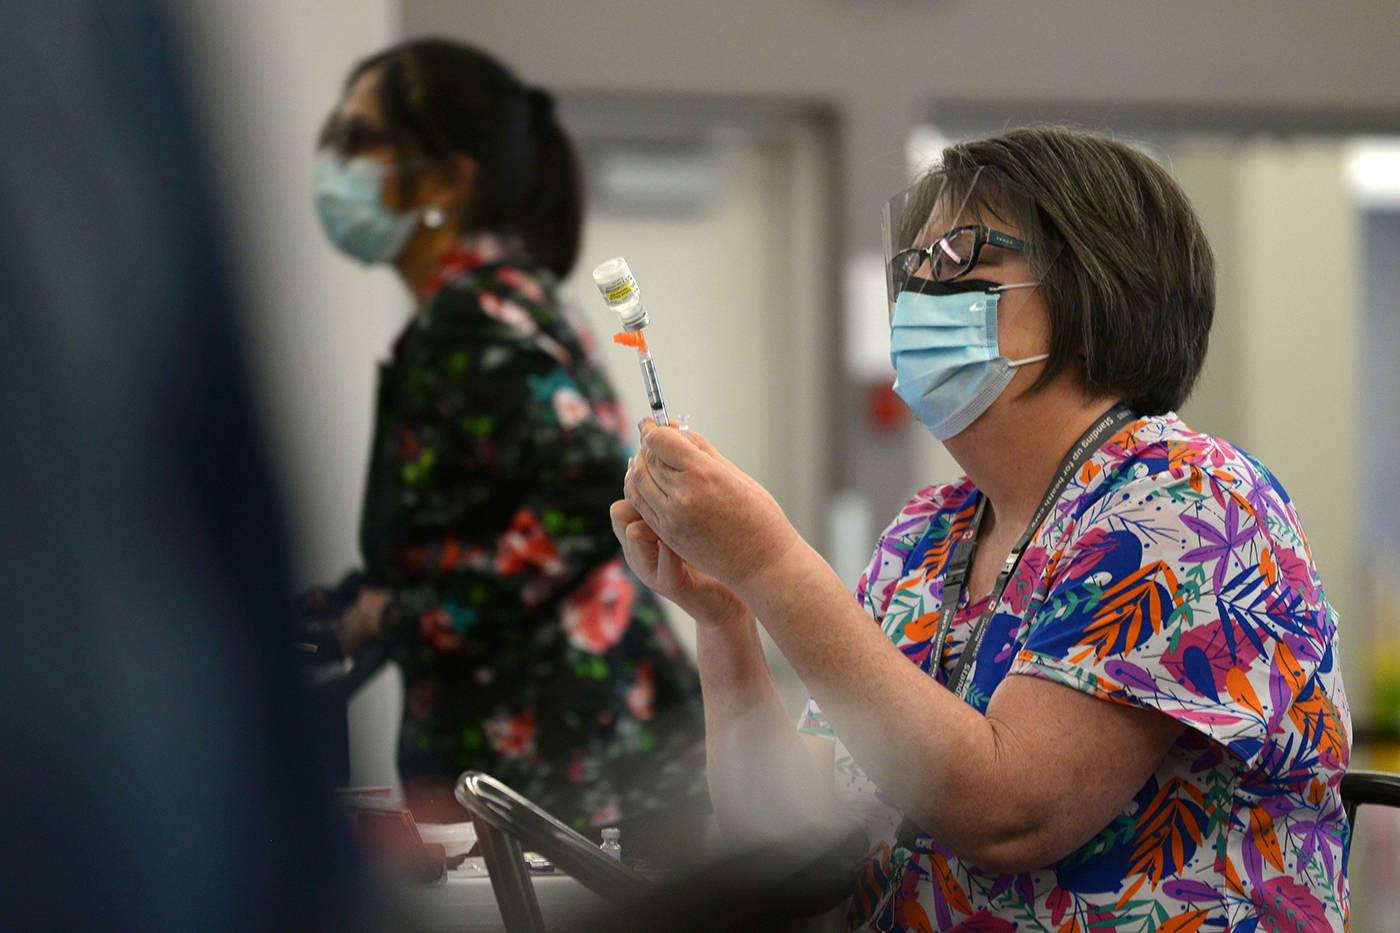 Vaccine clinics will be busy as thousands of British Columbians sign up for their first dose in wake of B.C. vaccine card announcement. (Phil McLachlan/Kelowna Capital News)